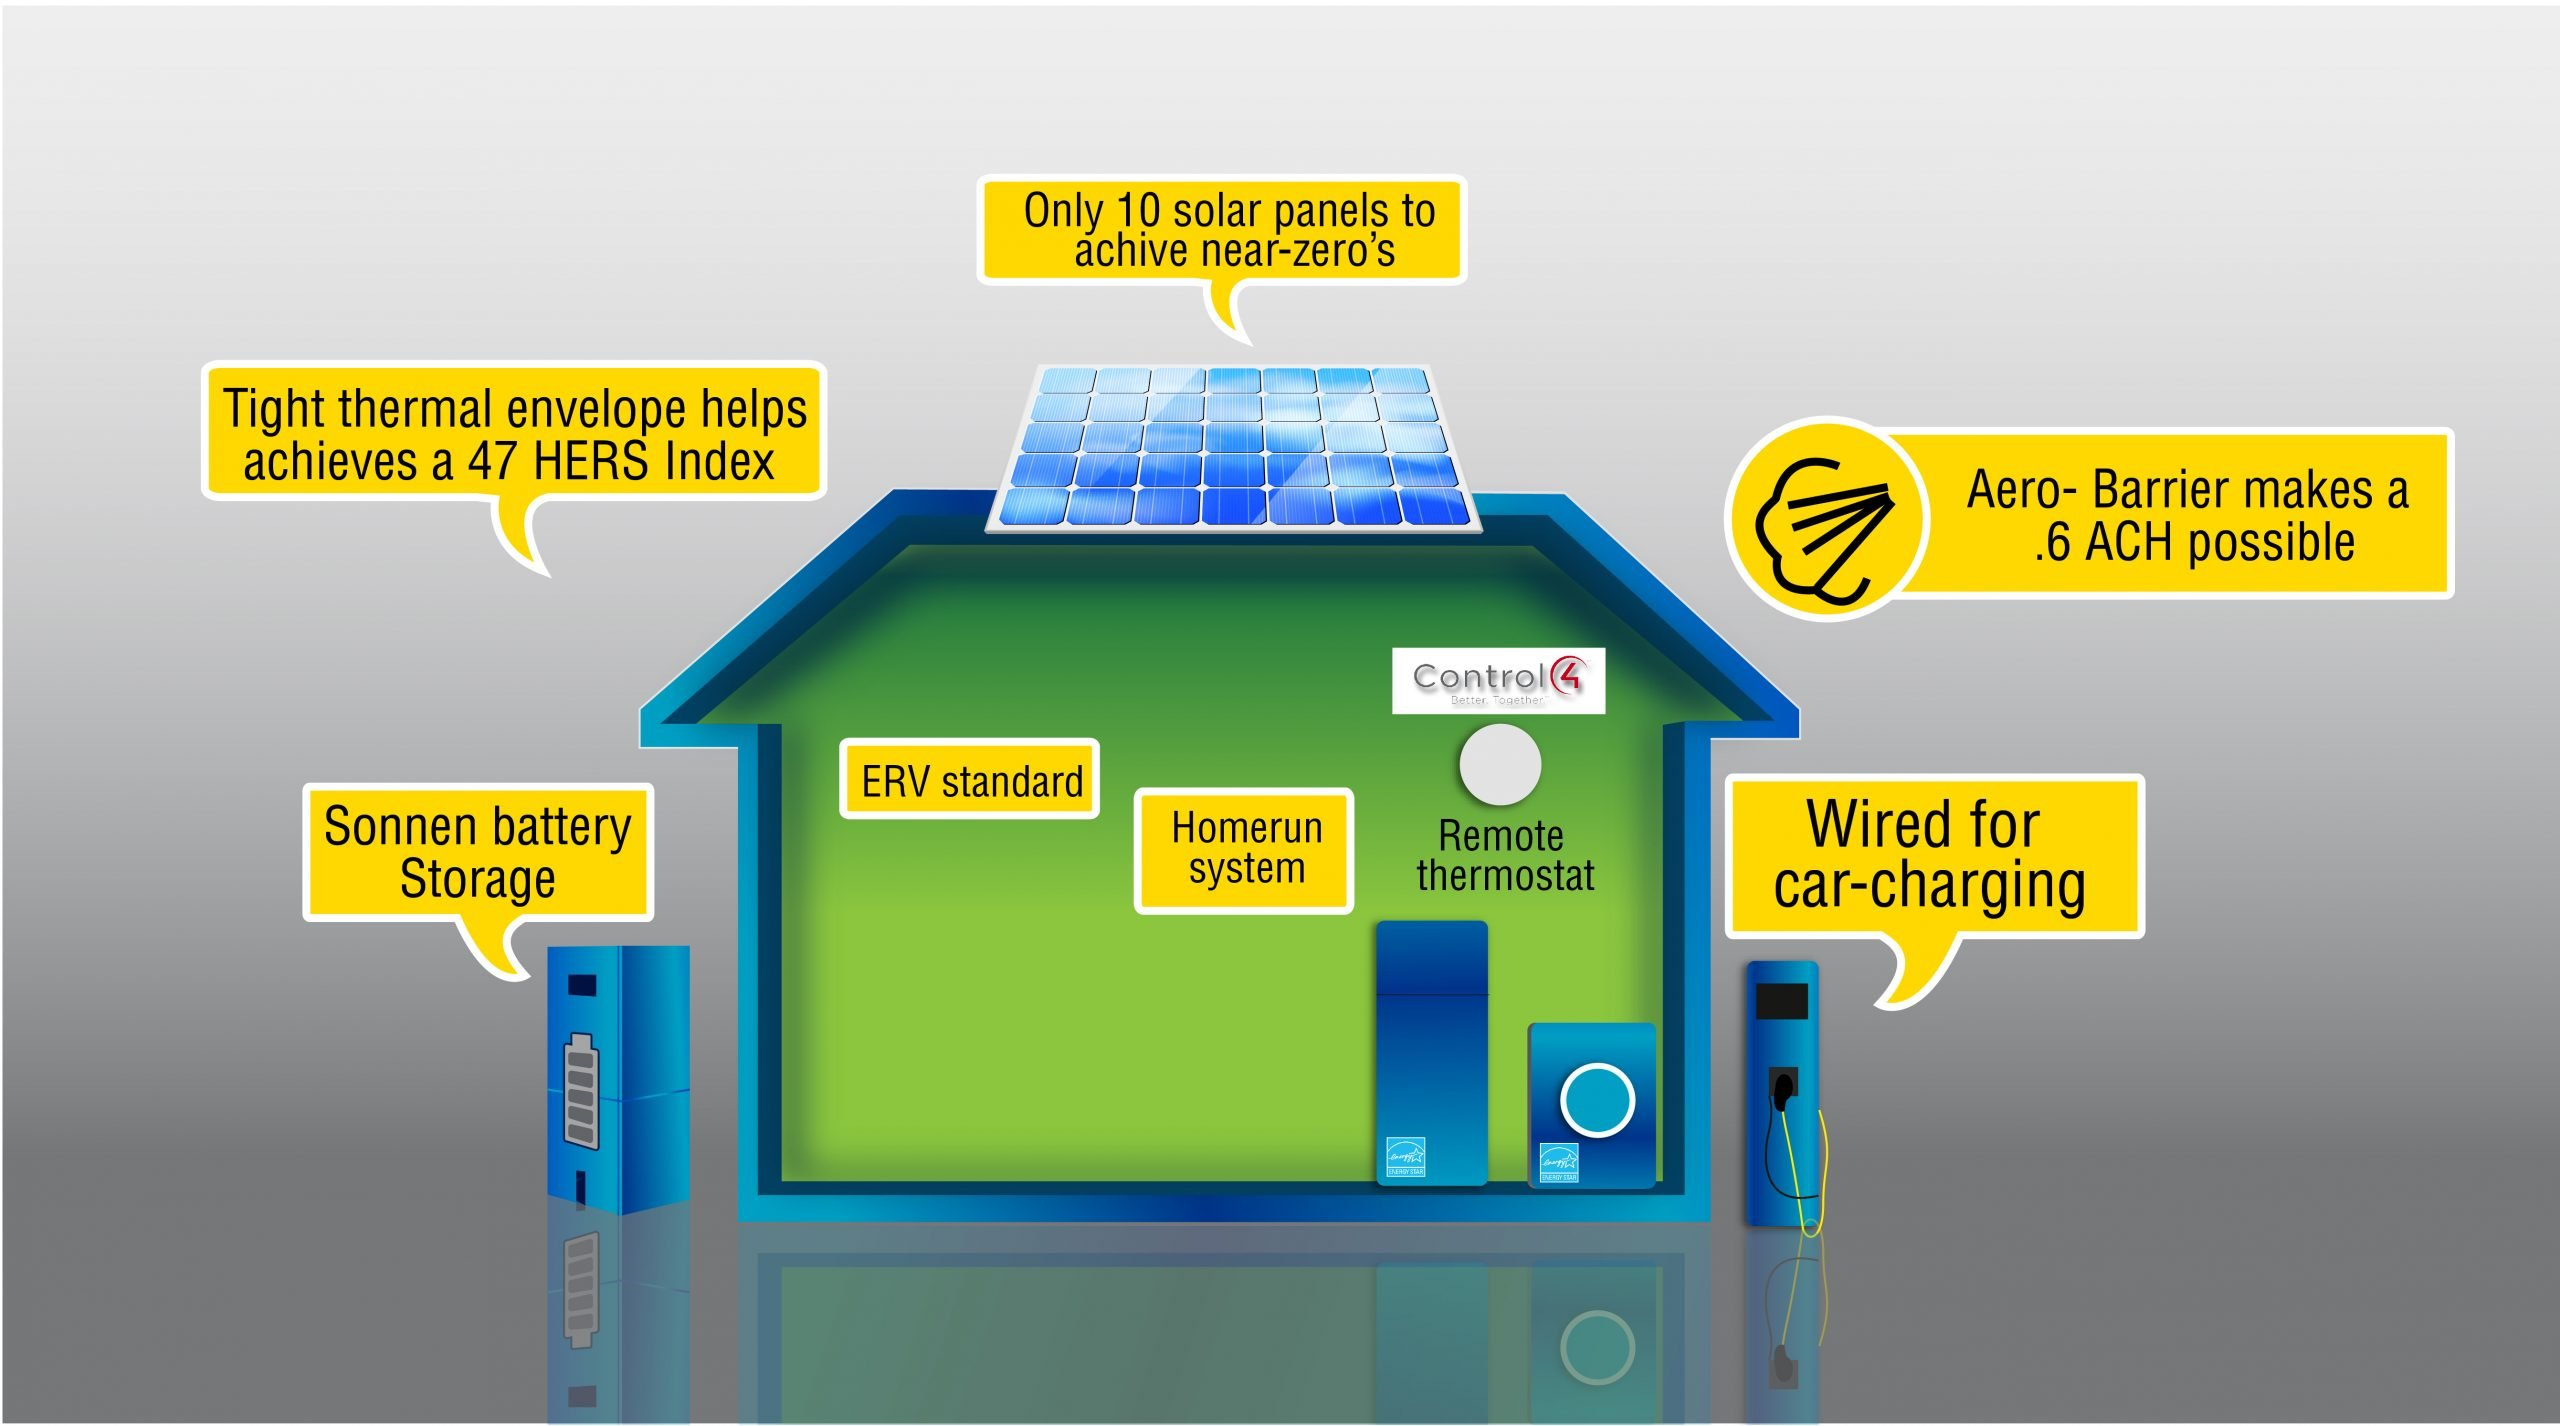 The near-zero formula is seal, store, and solar.